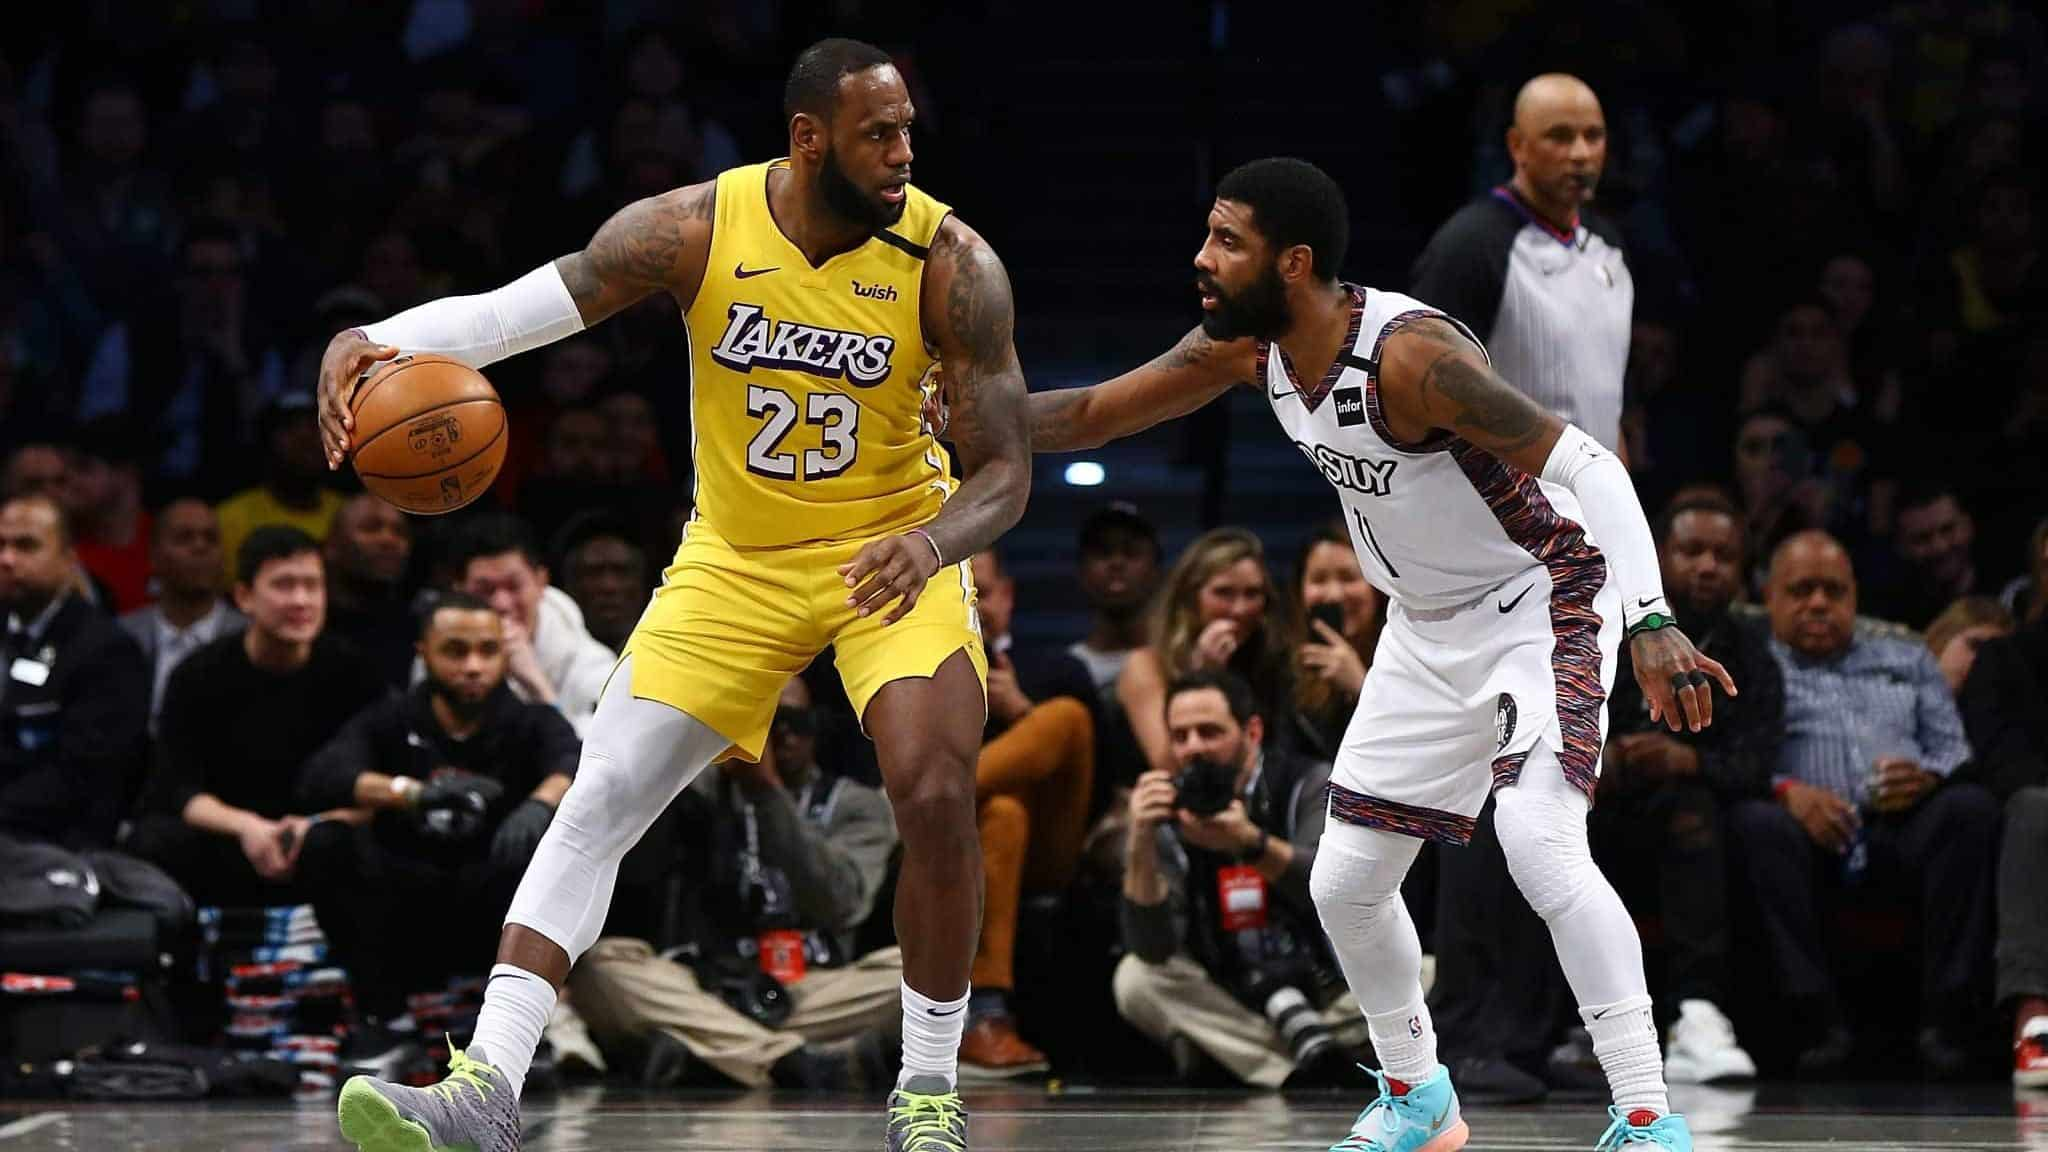 Lakers 23 is playing with the nets and ready to break through their defense